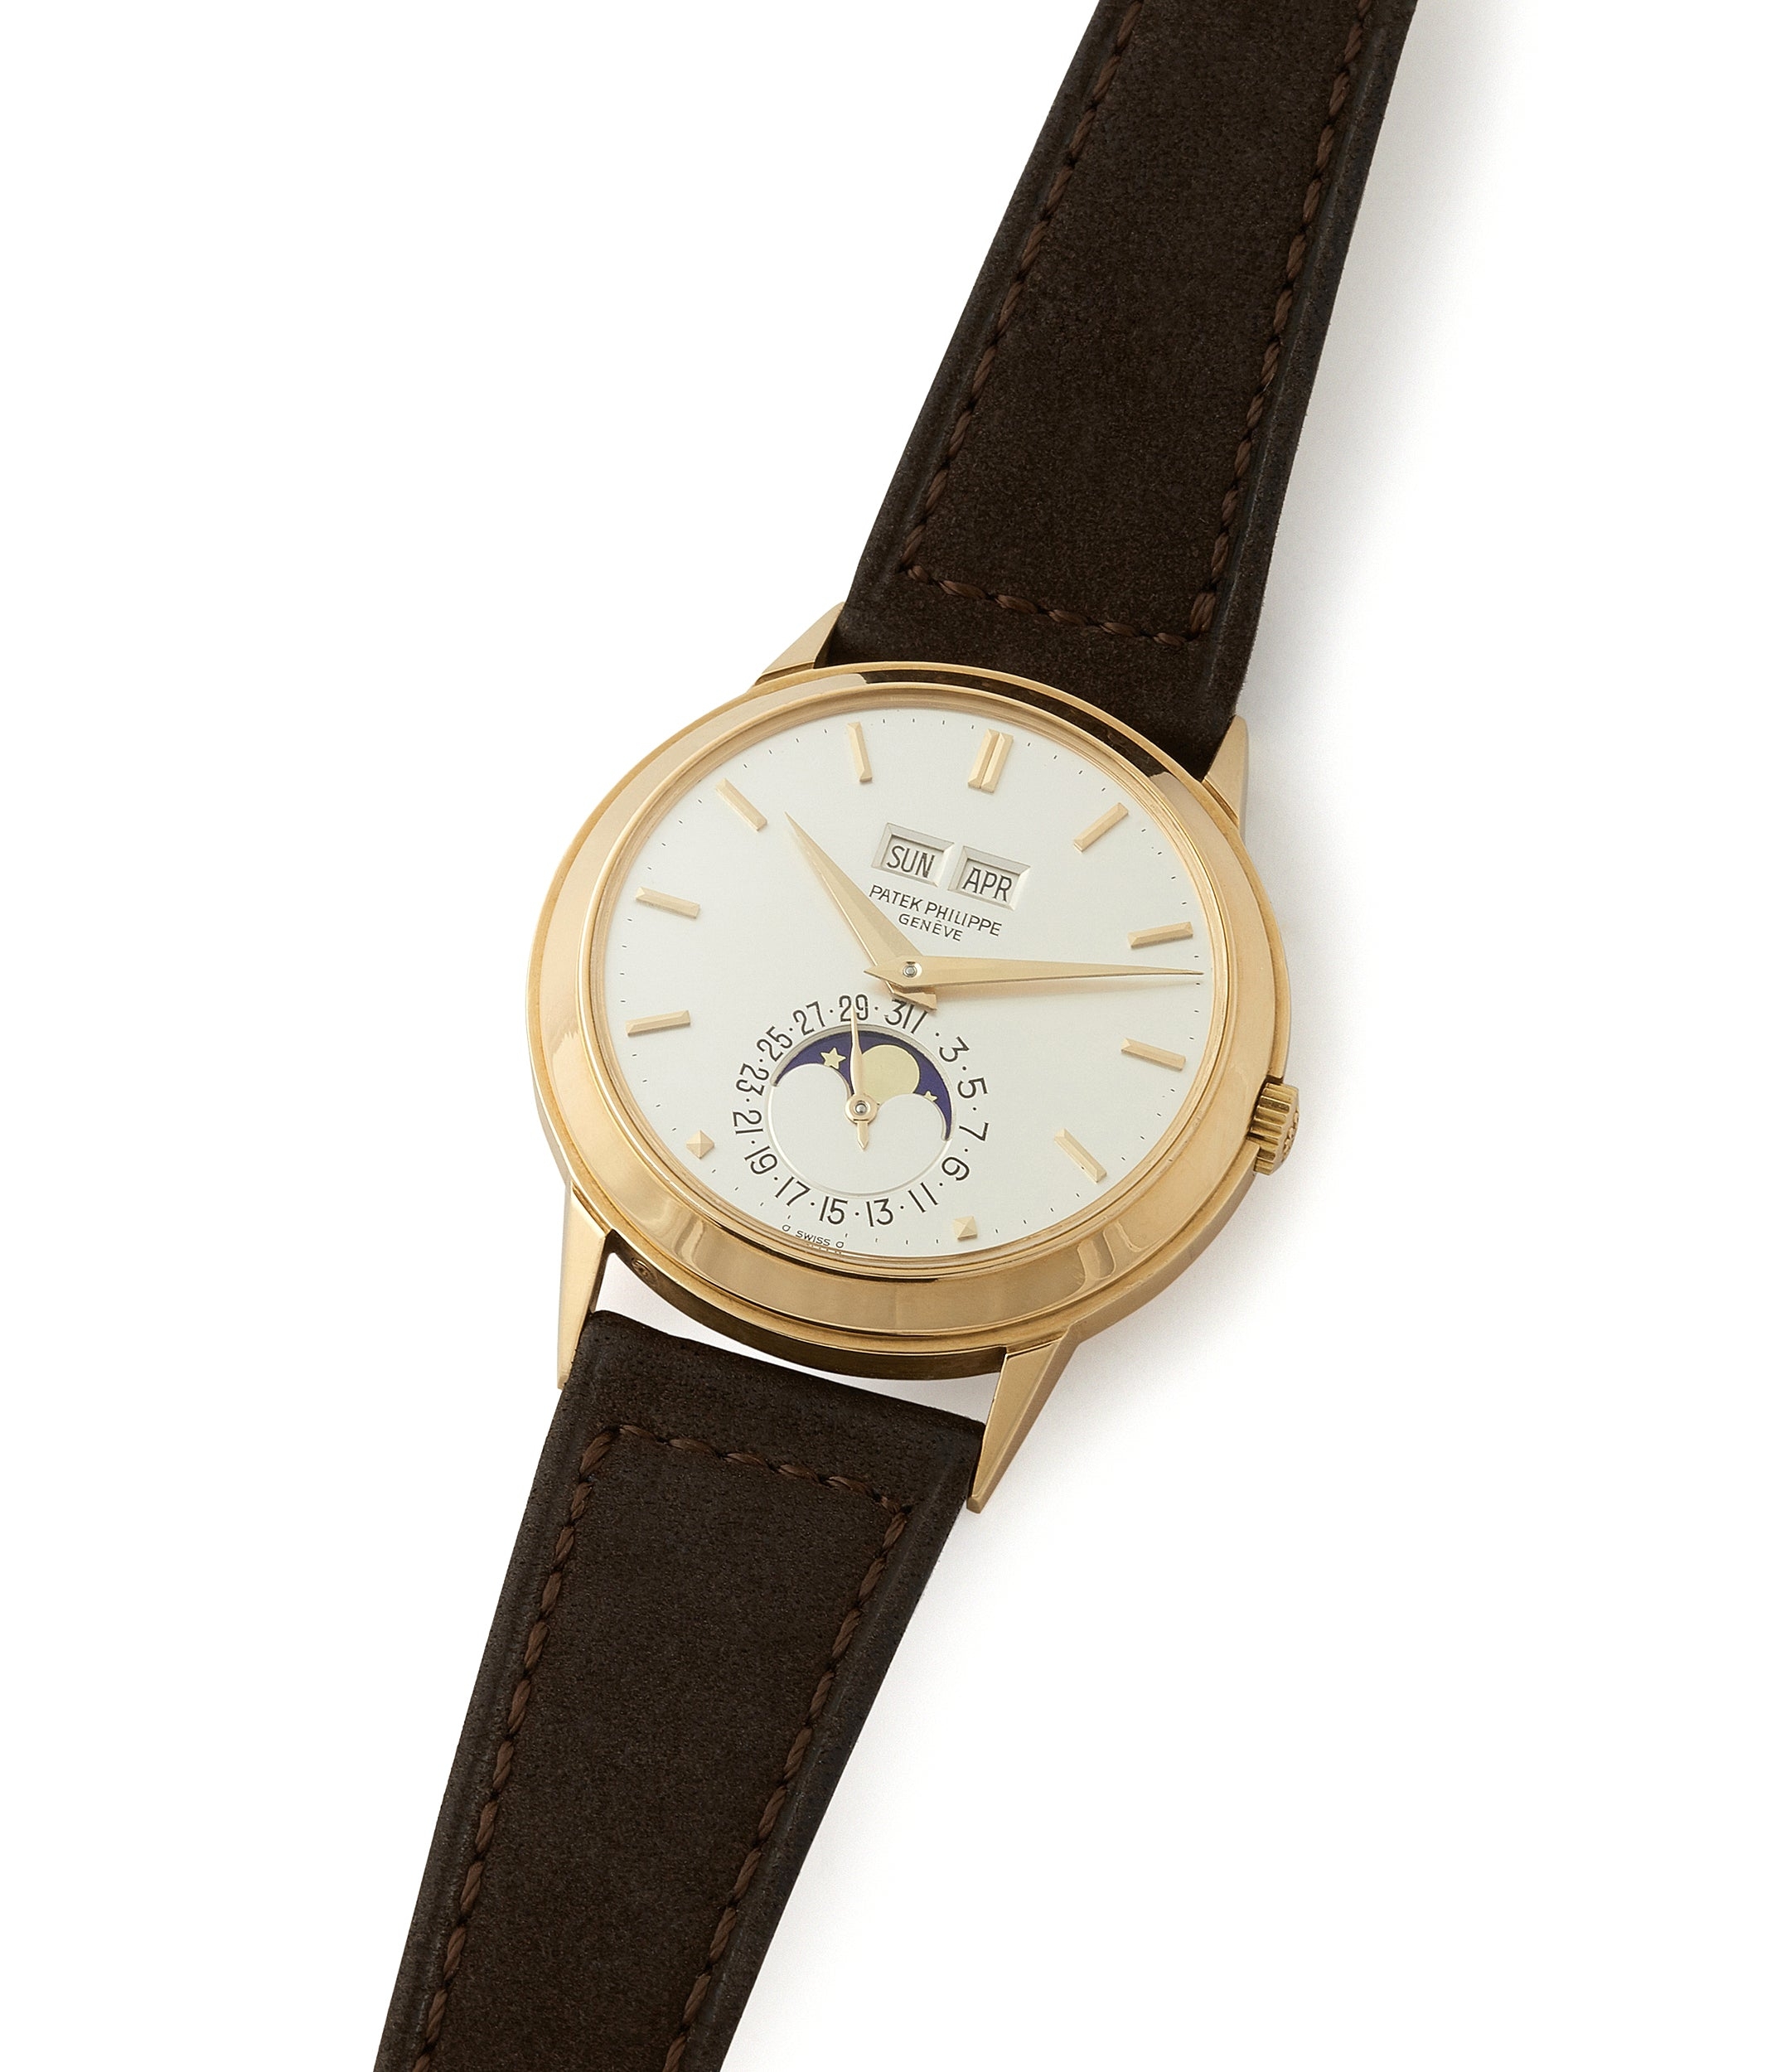 shop vintage Patek Philippe 3448 Perpetual Calendar Moonphase yellow gold dress watch for sale online at A Collected Man London UK specialist of rare watches